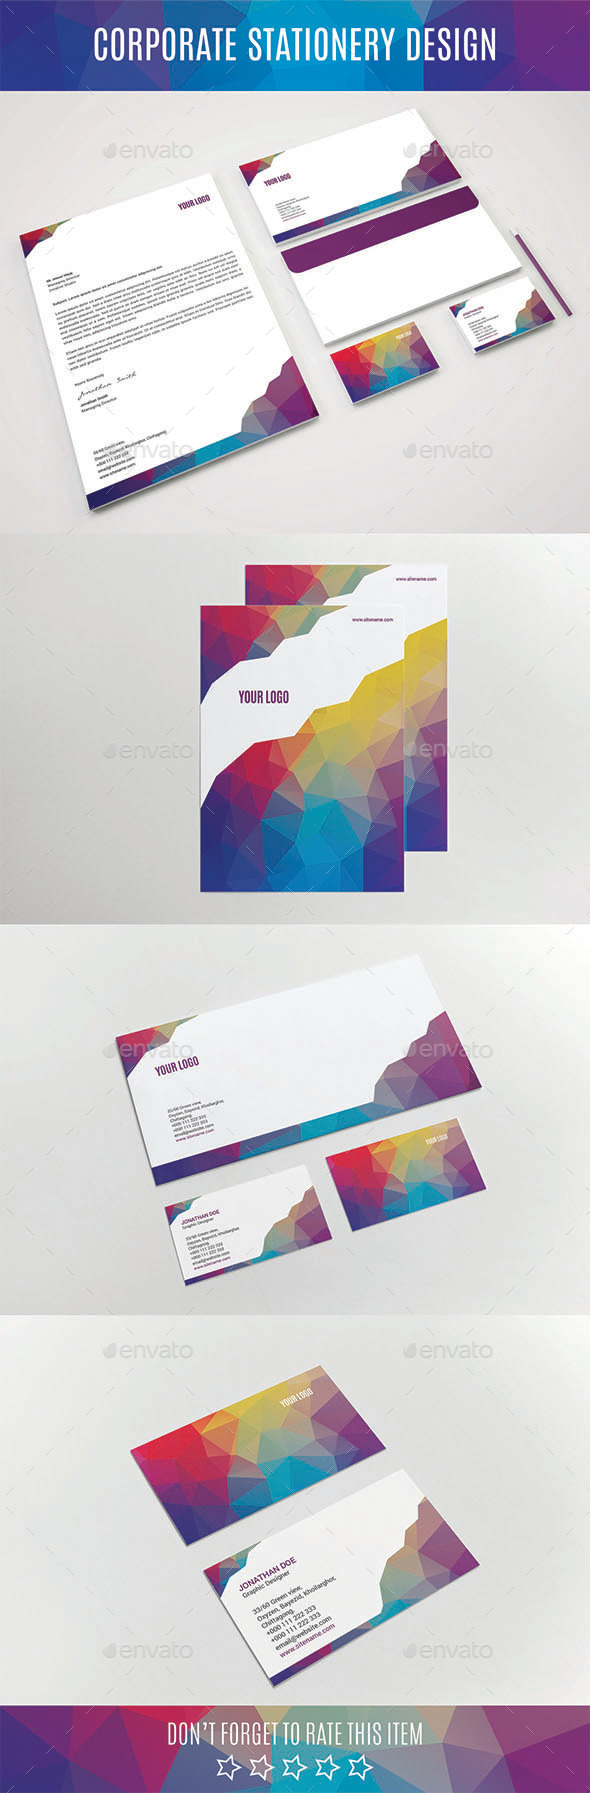 GraphicRiver Corporate Stationery Design 11040130